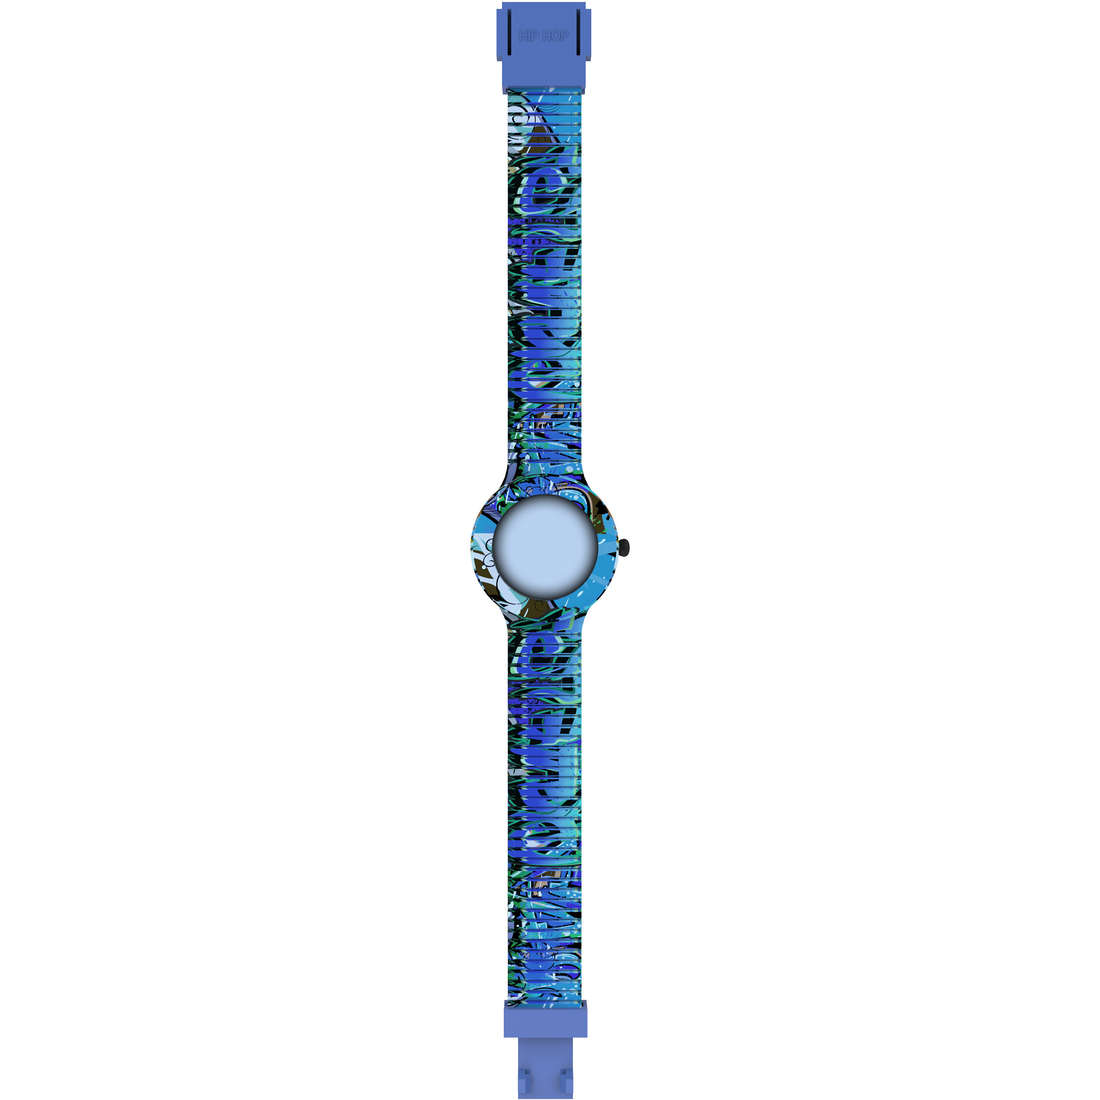 watch accessory woman Hip Hop Graffiti HBU0625